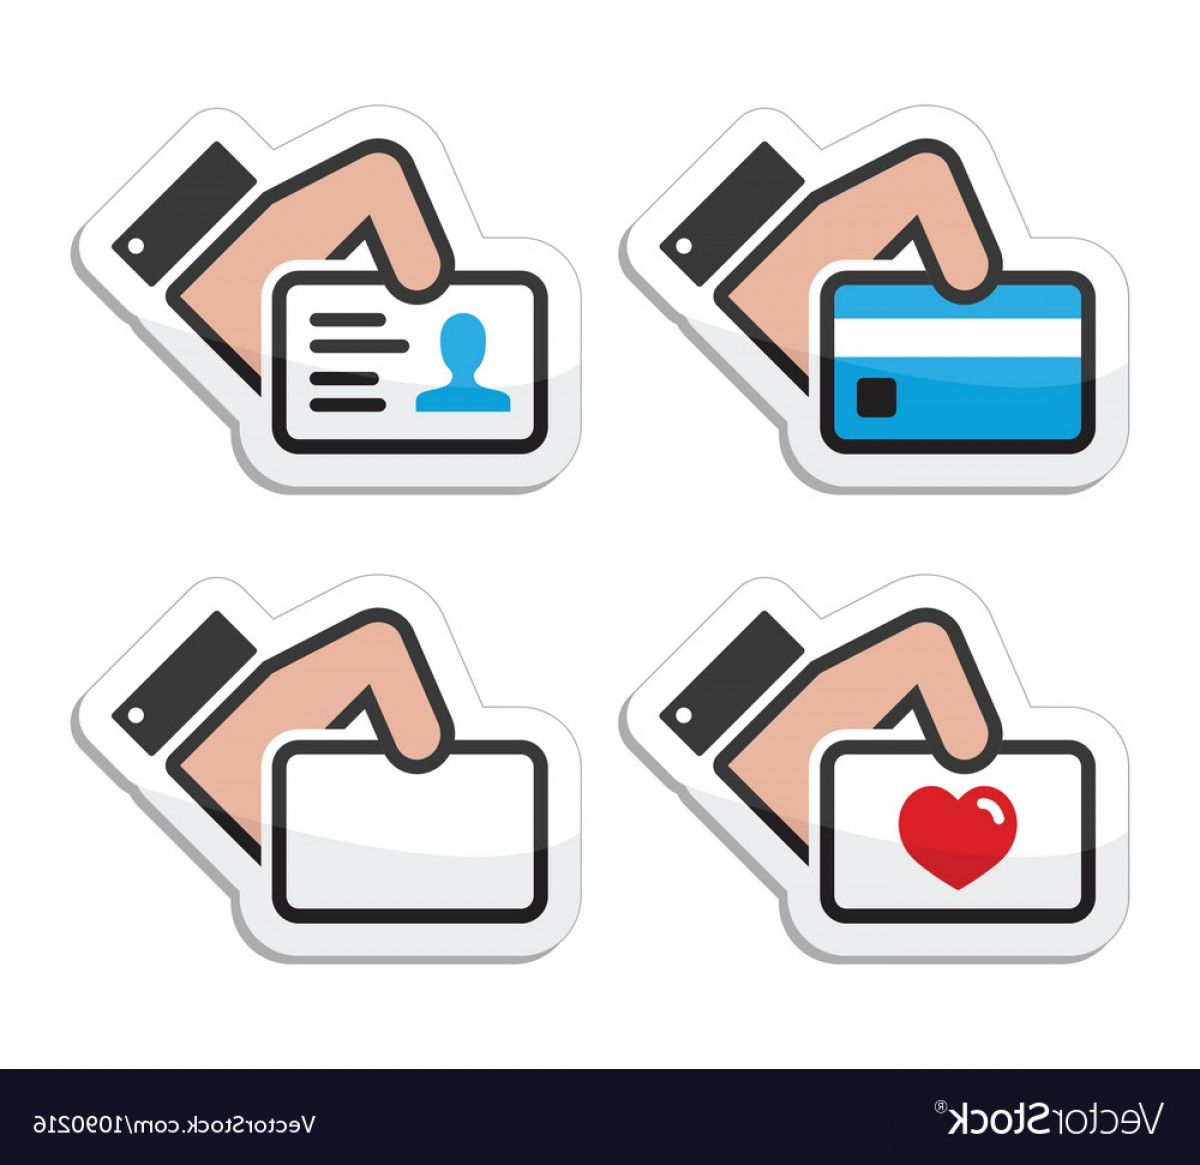 Credit Card Logos Vector: Hand Holding Credit Card Business Card Id Icons Vector